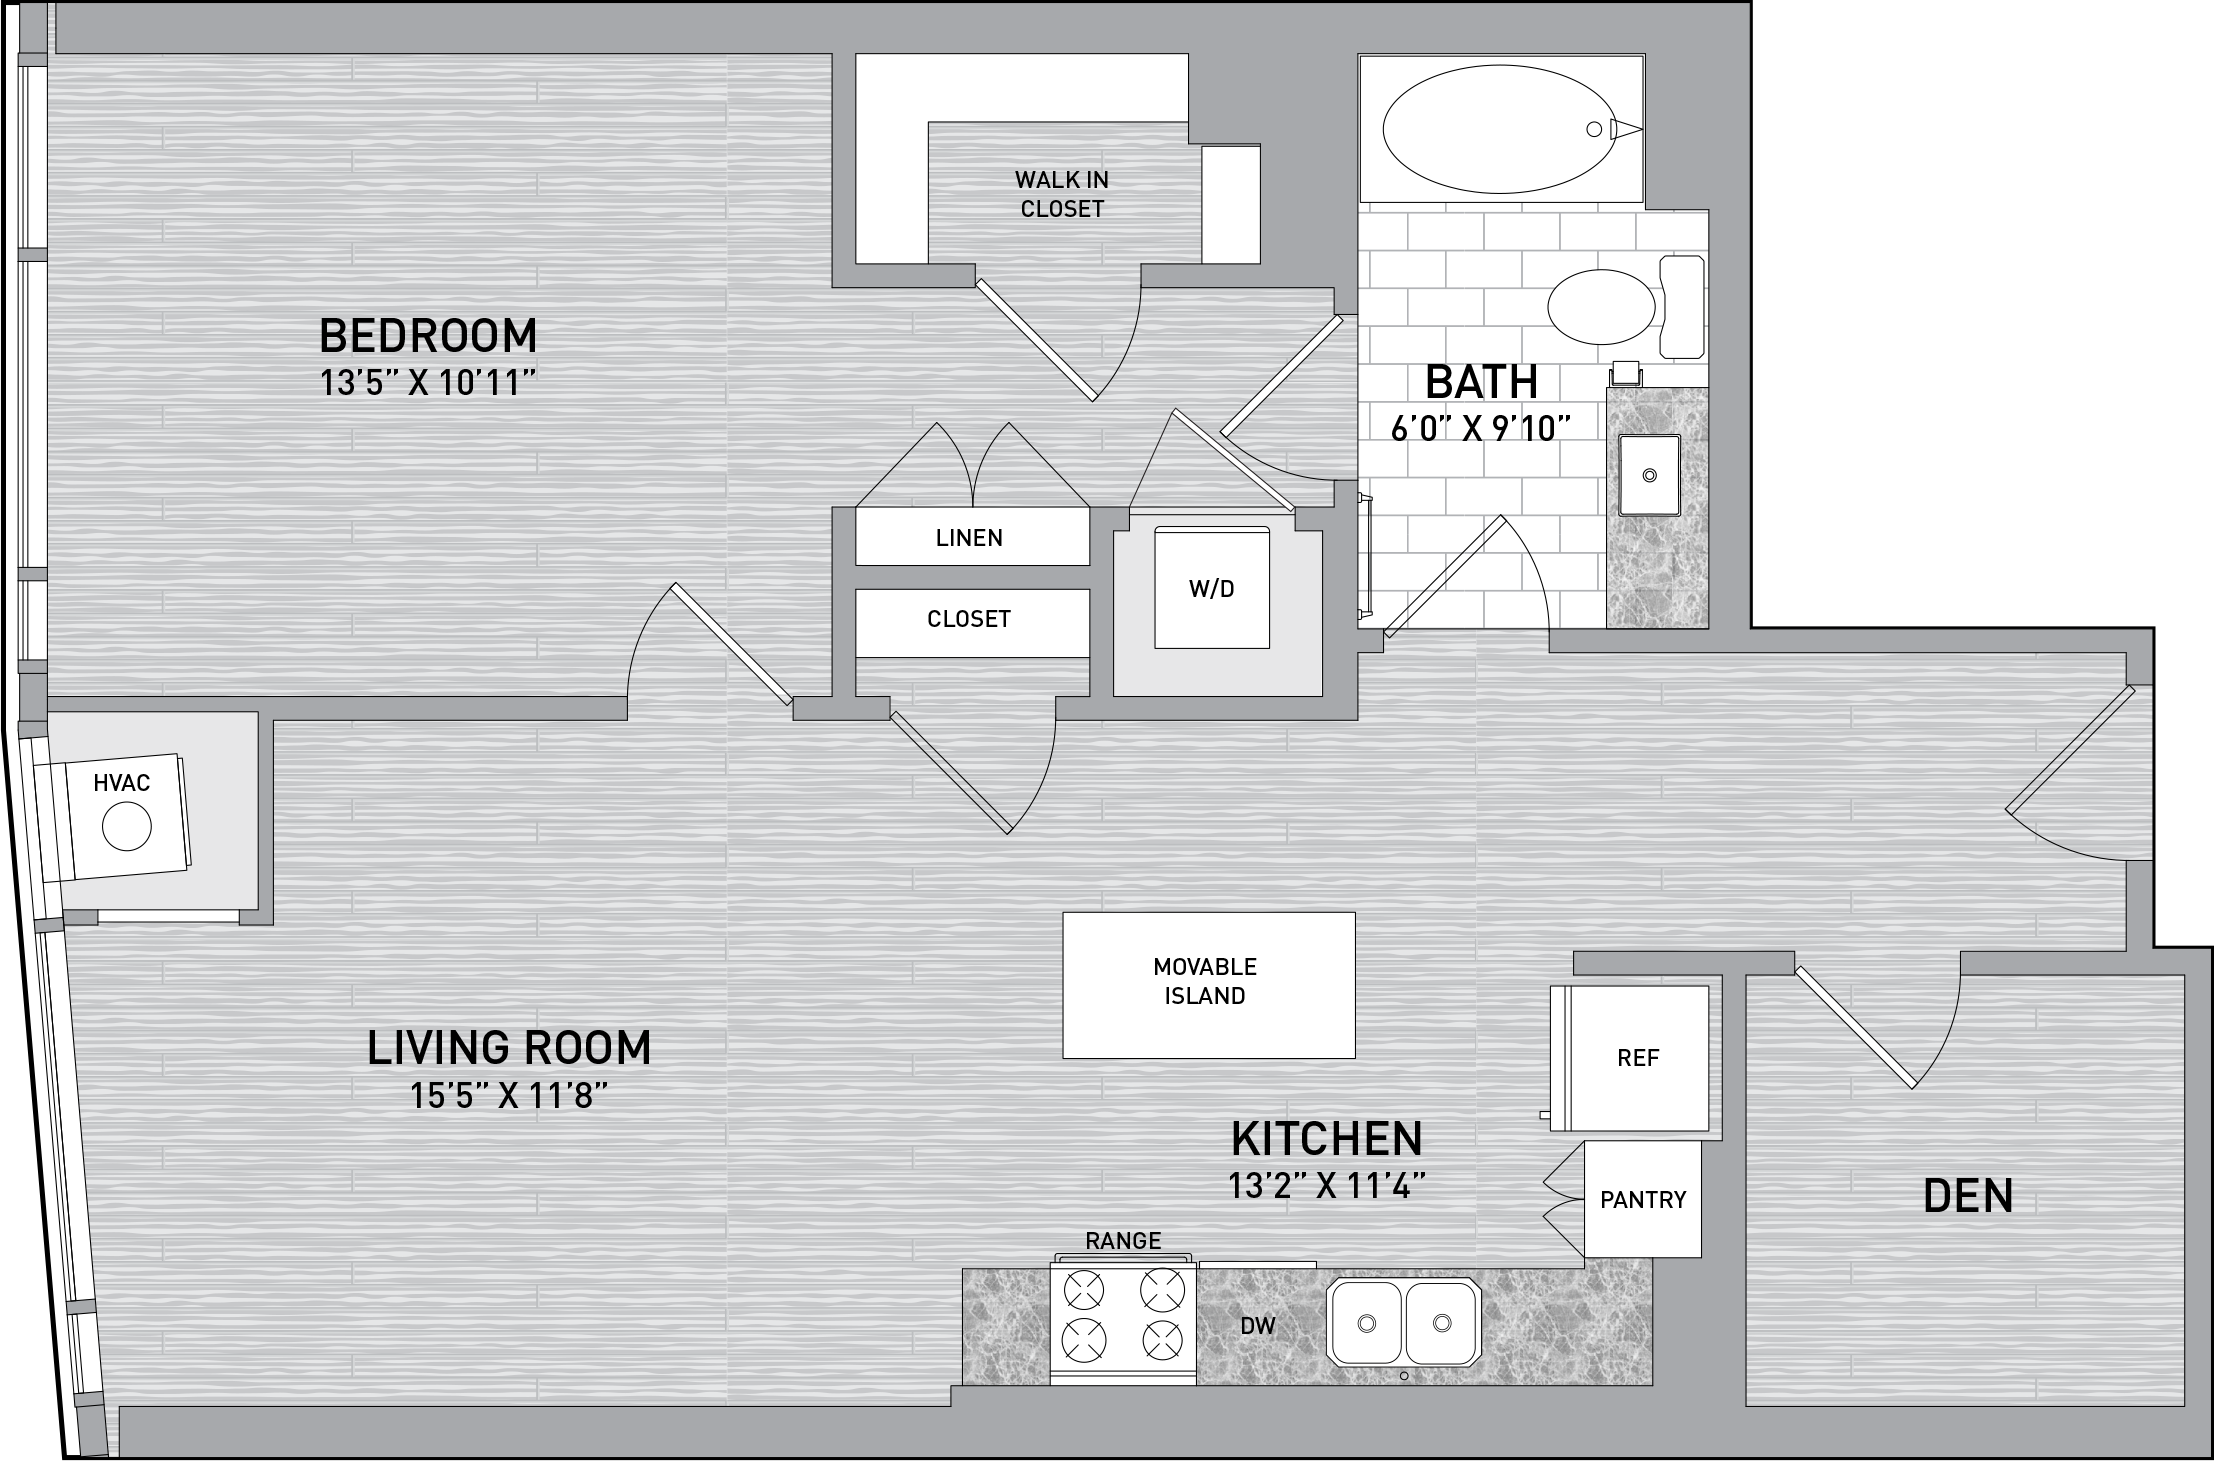 floorplan image of unit id 828